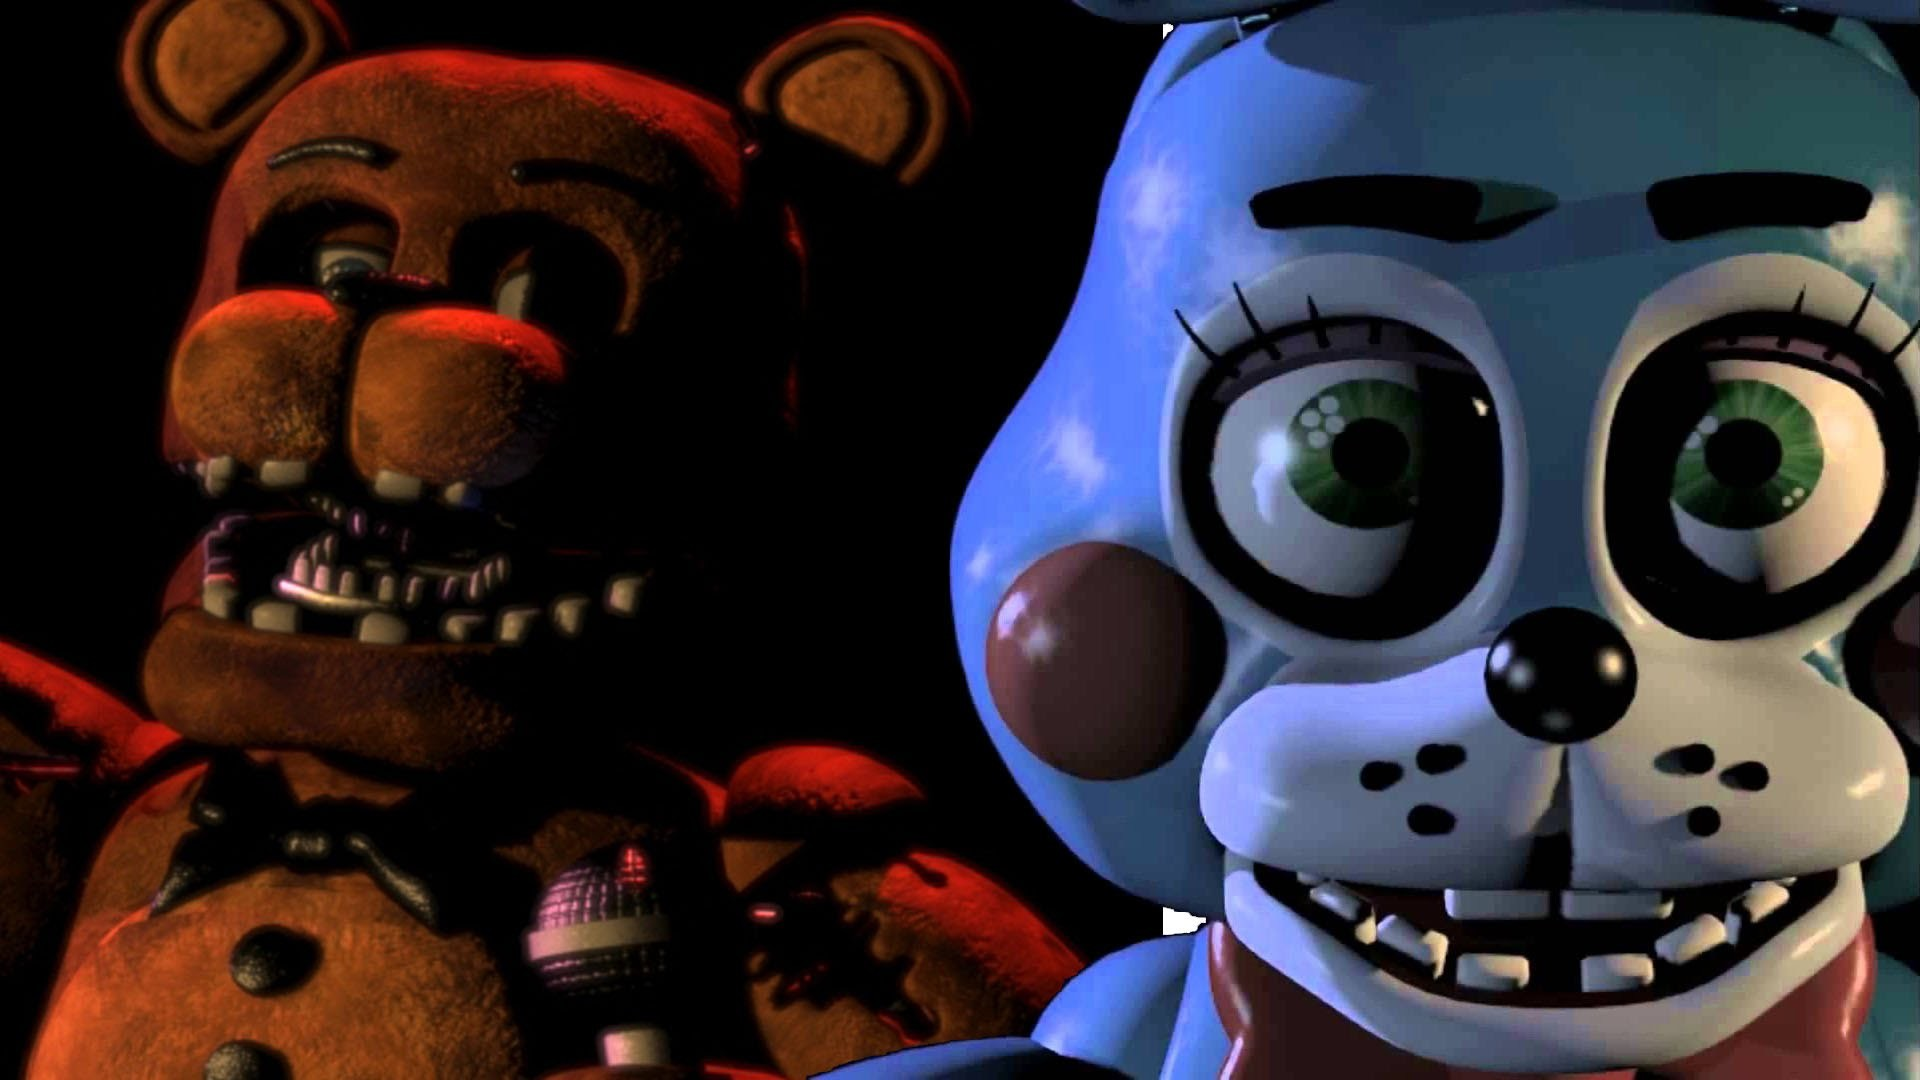 FIVE NIGHTS AT FREDDY'S 2 | Top 5 Reactions HD (PewDiePie, Markiplier,  Jacksepticeye and more!) – YouTube